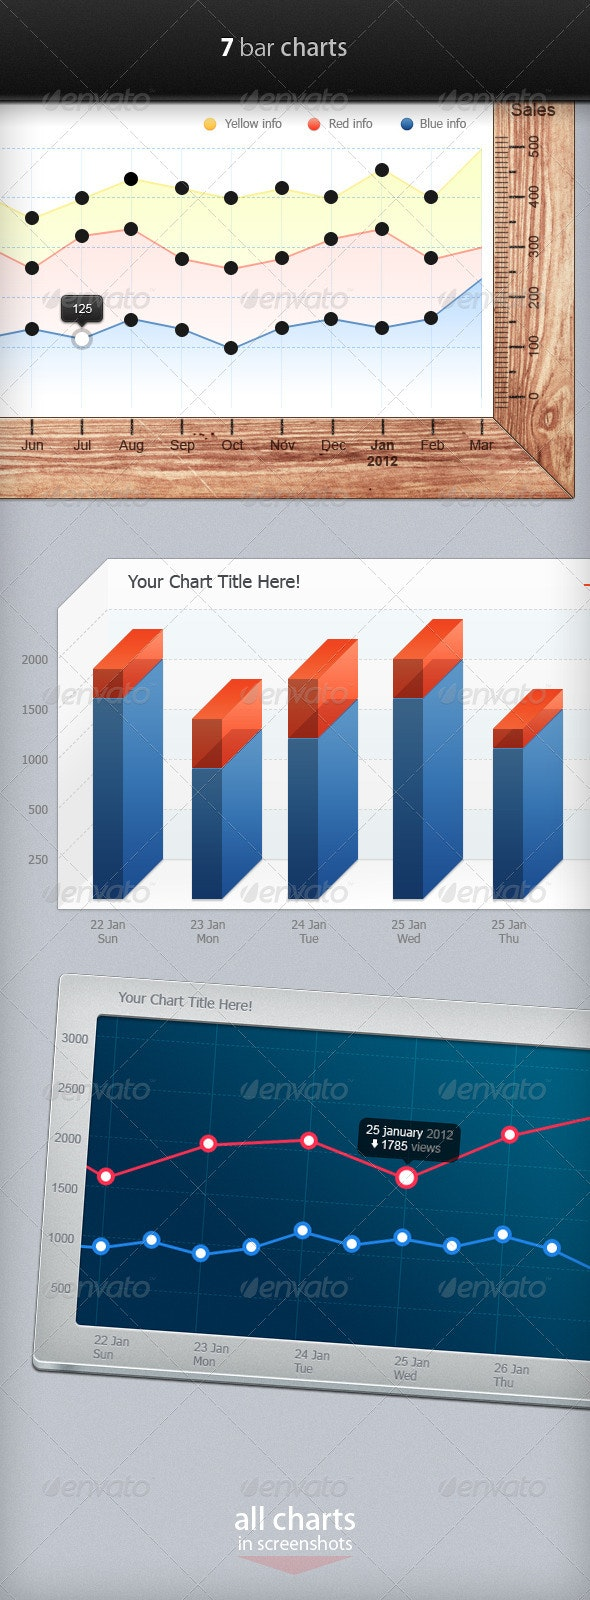 Bar Charts (Infographic Elements) - Infographics